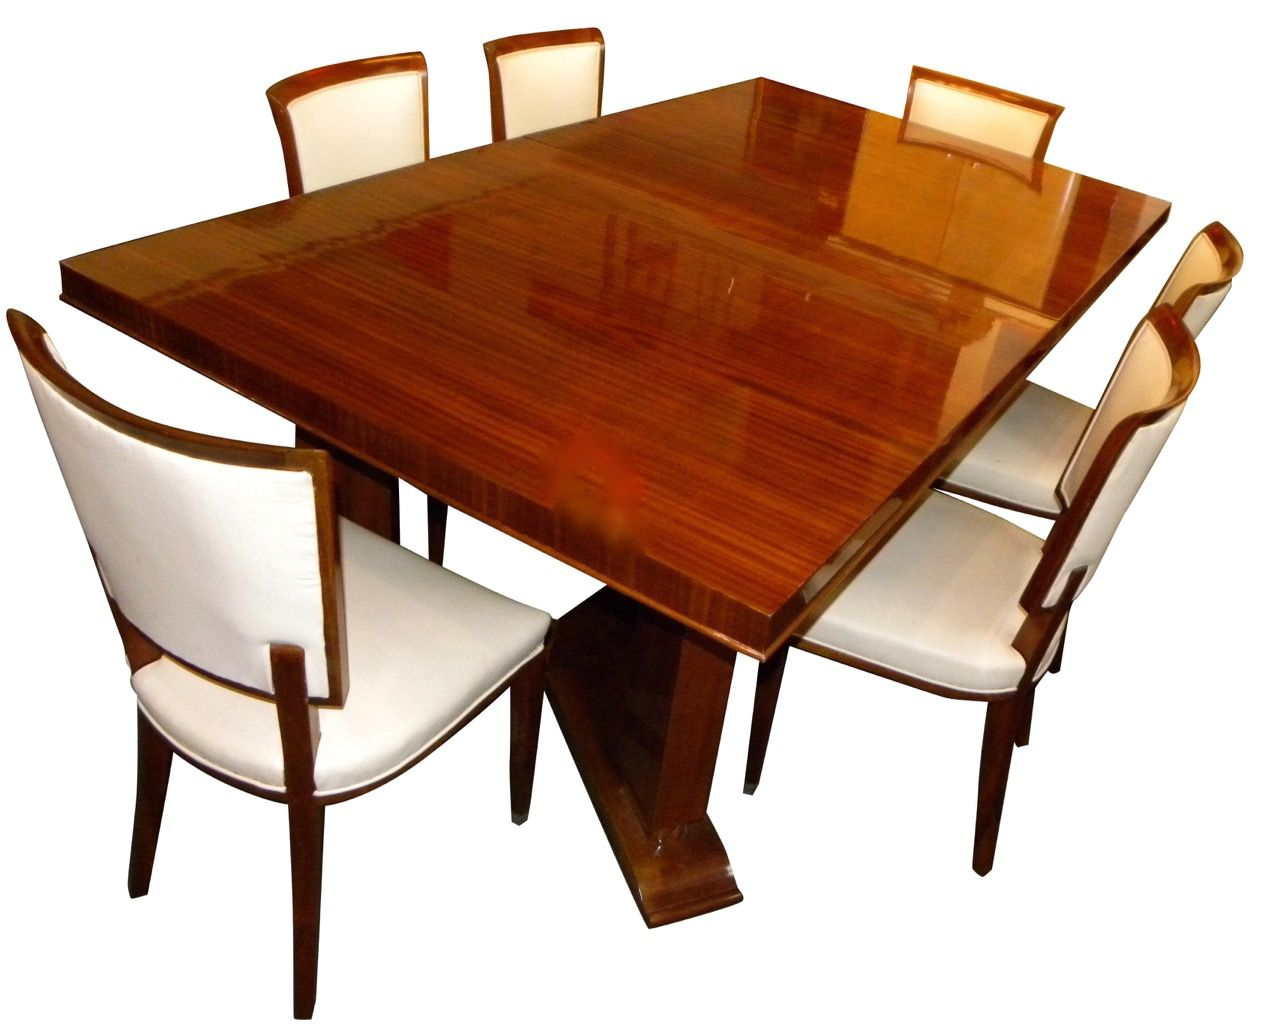 Jules Leleu Dining Room Table U0026 Chairs 1937 Paris Exhibition